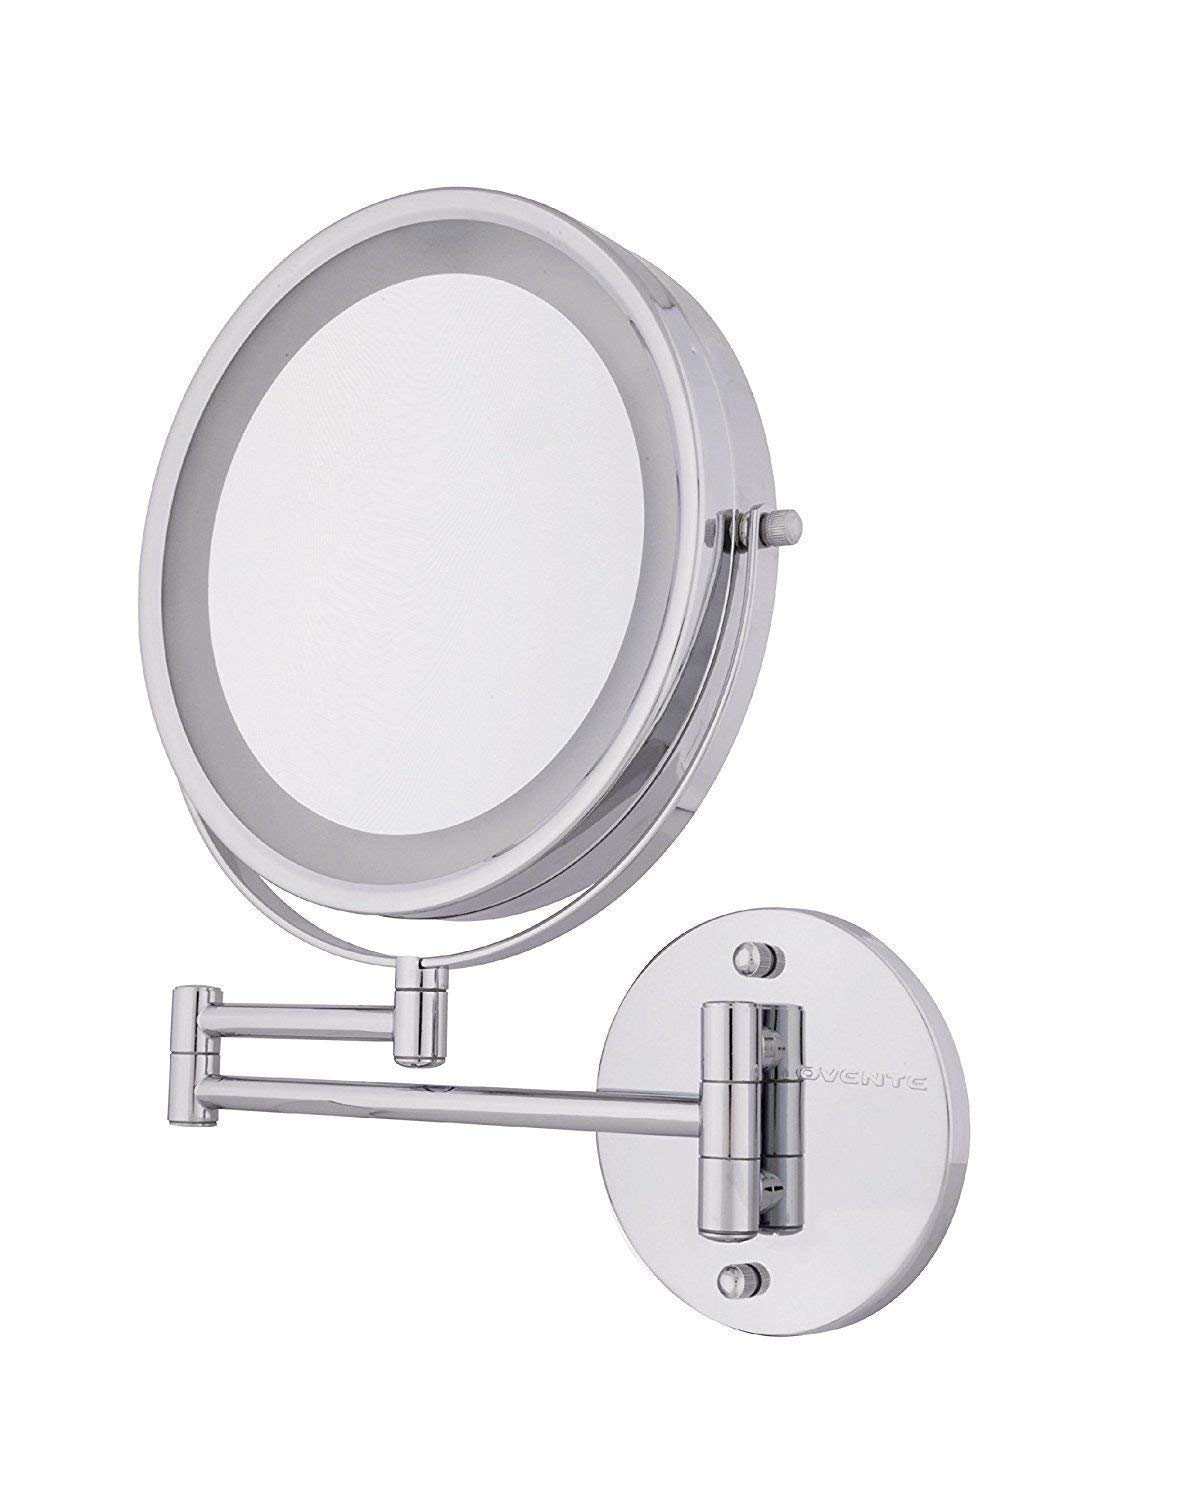 FAMLOVE LED Lighted Makeup Mirror Wall Mount 10x Magnification Cosmetic Mirror 8.5 Inch Lighting Vanity Makeup Mirror Extendable Double-Sided Chrome